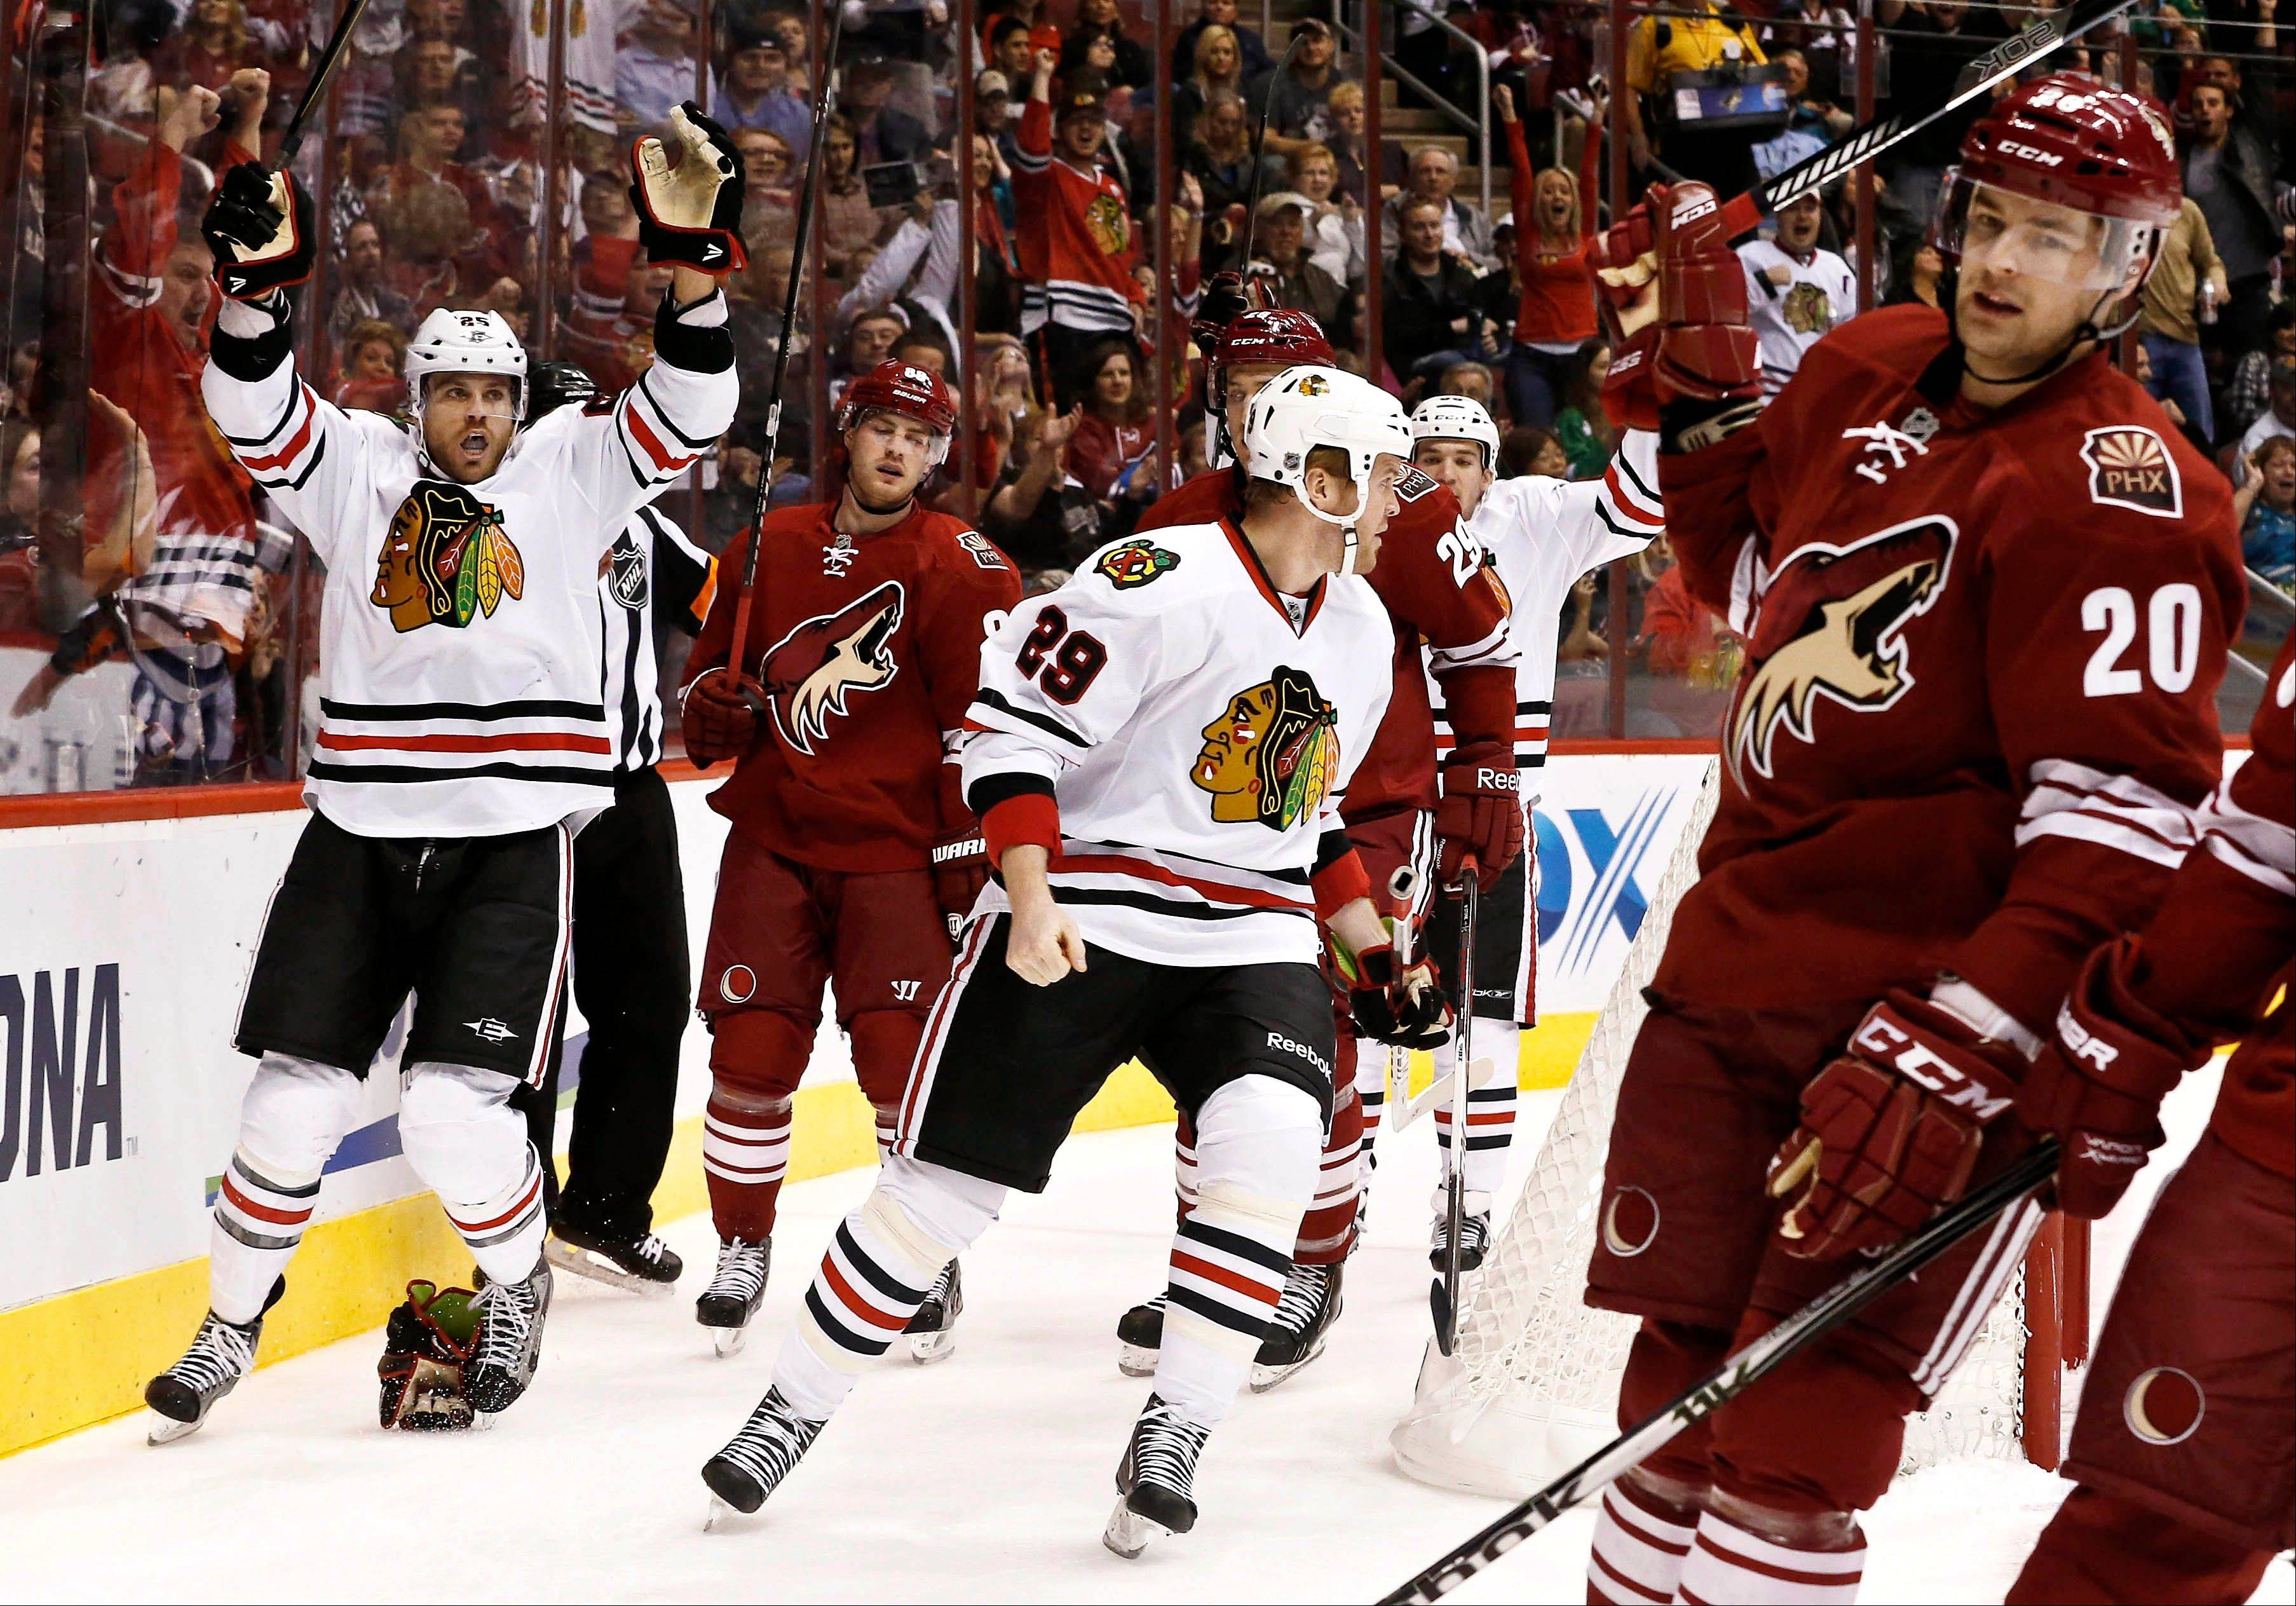 Viktor Stalberg, left, celebrates his goal with teammate Bryan Bickell (29) as Phoenix Coyotes' Chris Summers (20) and Mikkel Boedker, second from left, show their frustration Thursday night. The Blackhawks won the game, 6-2.